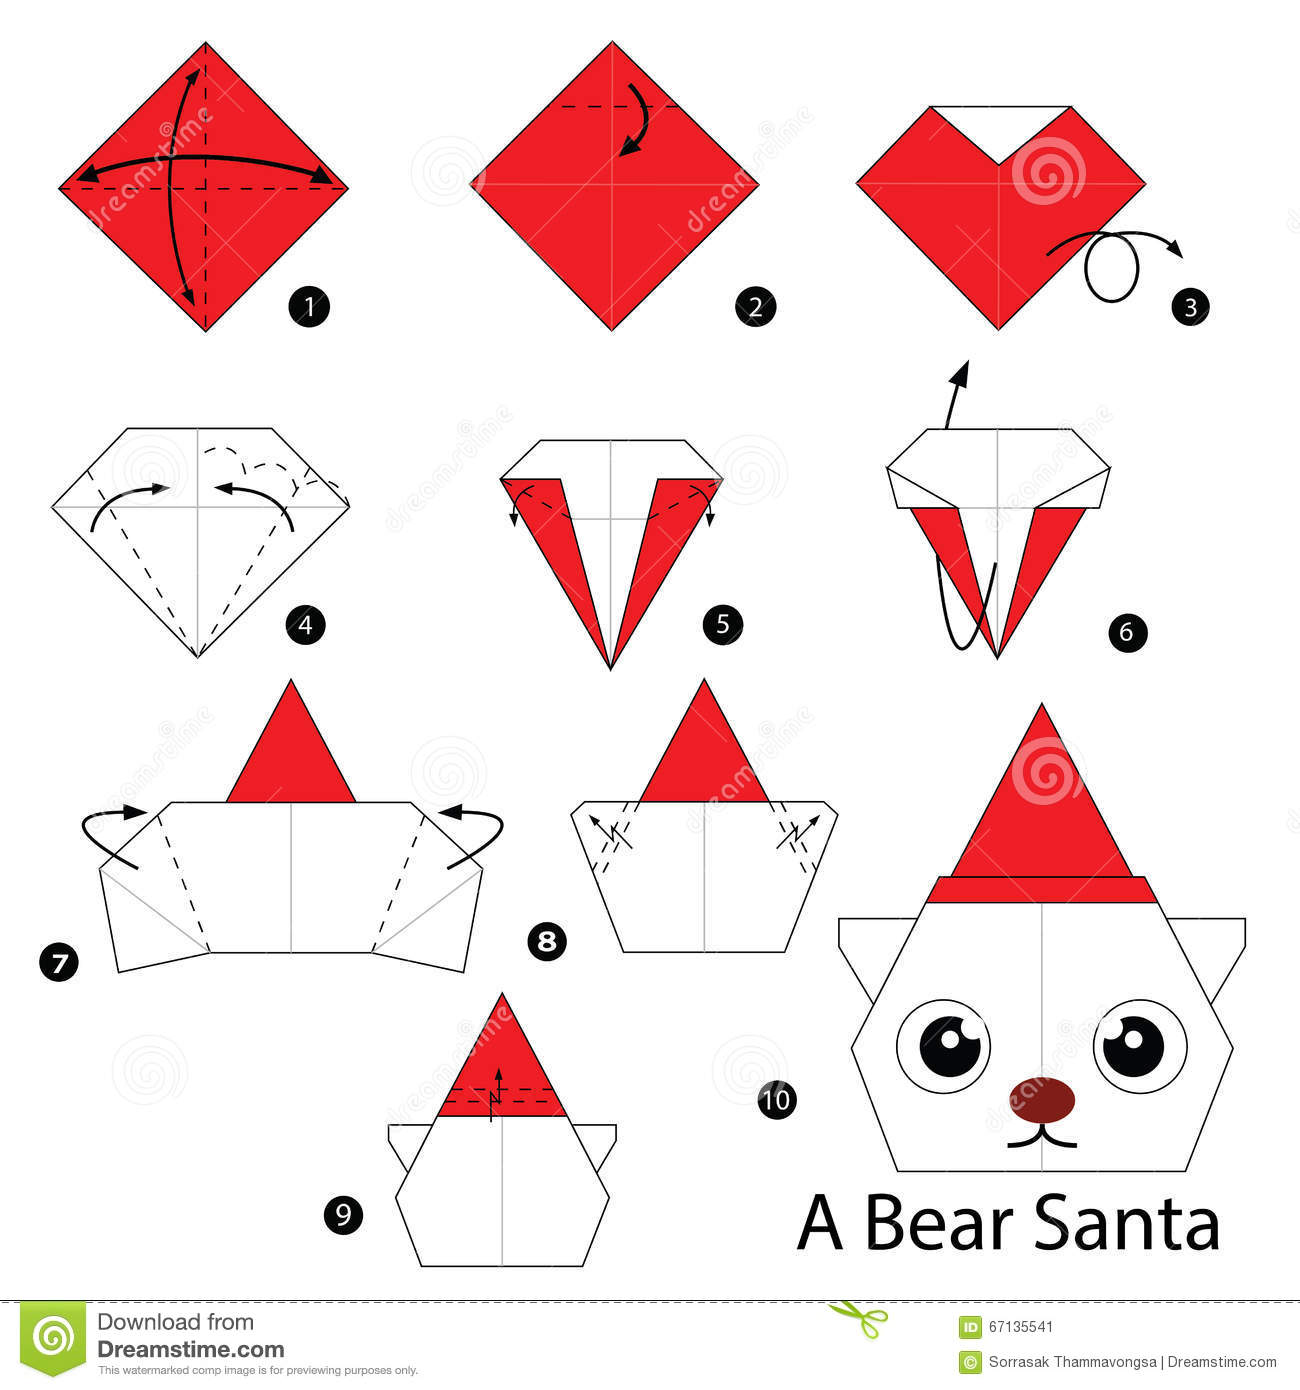 Step By Step Instructions How To Make Origami Bear Santa